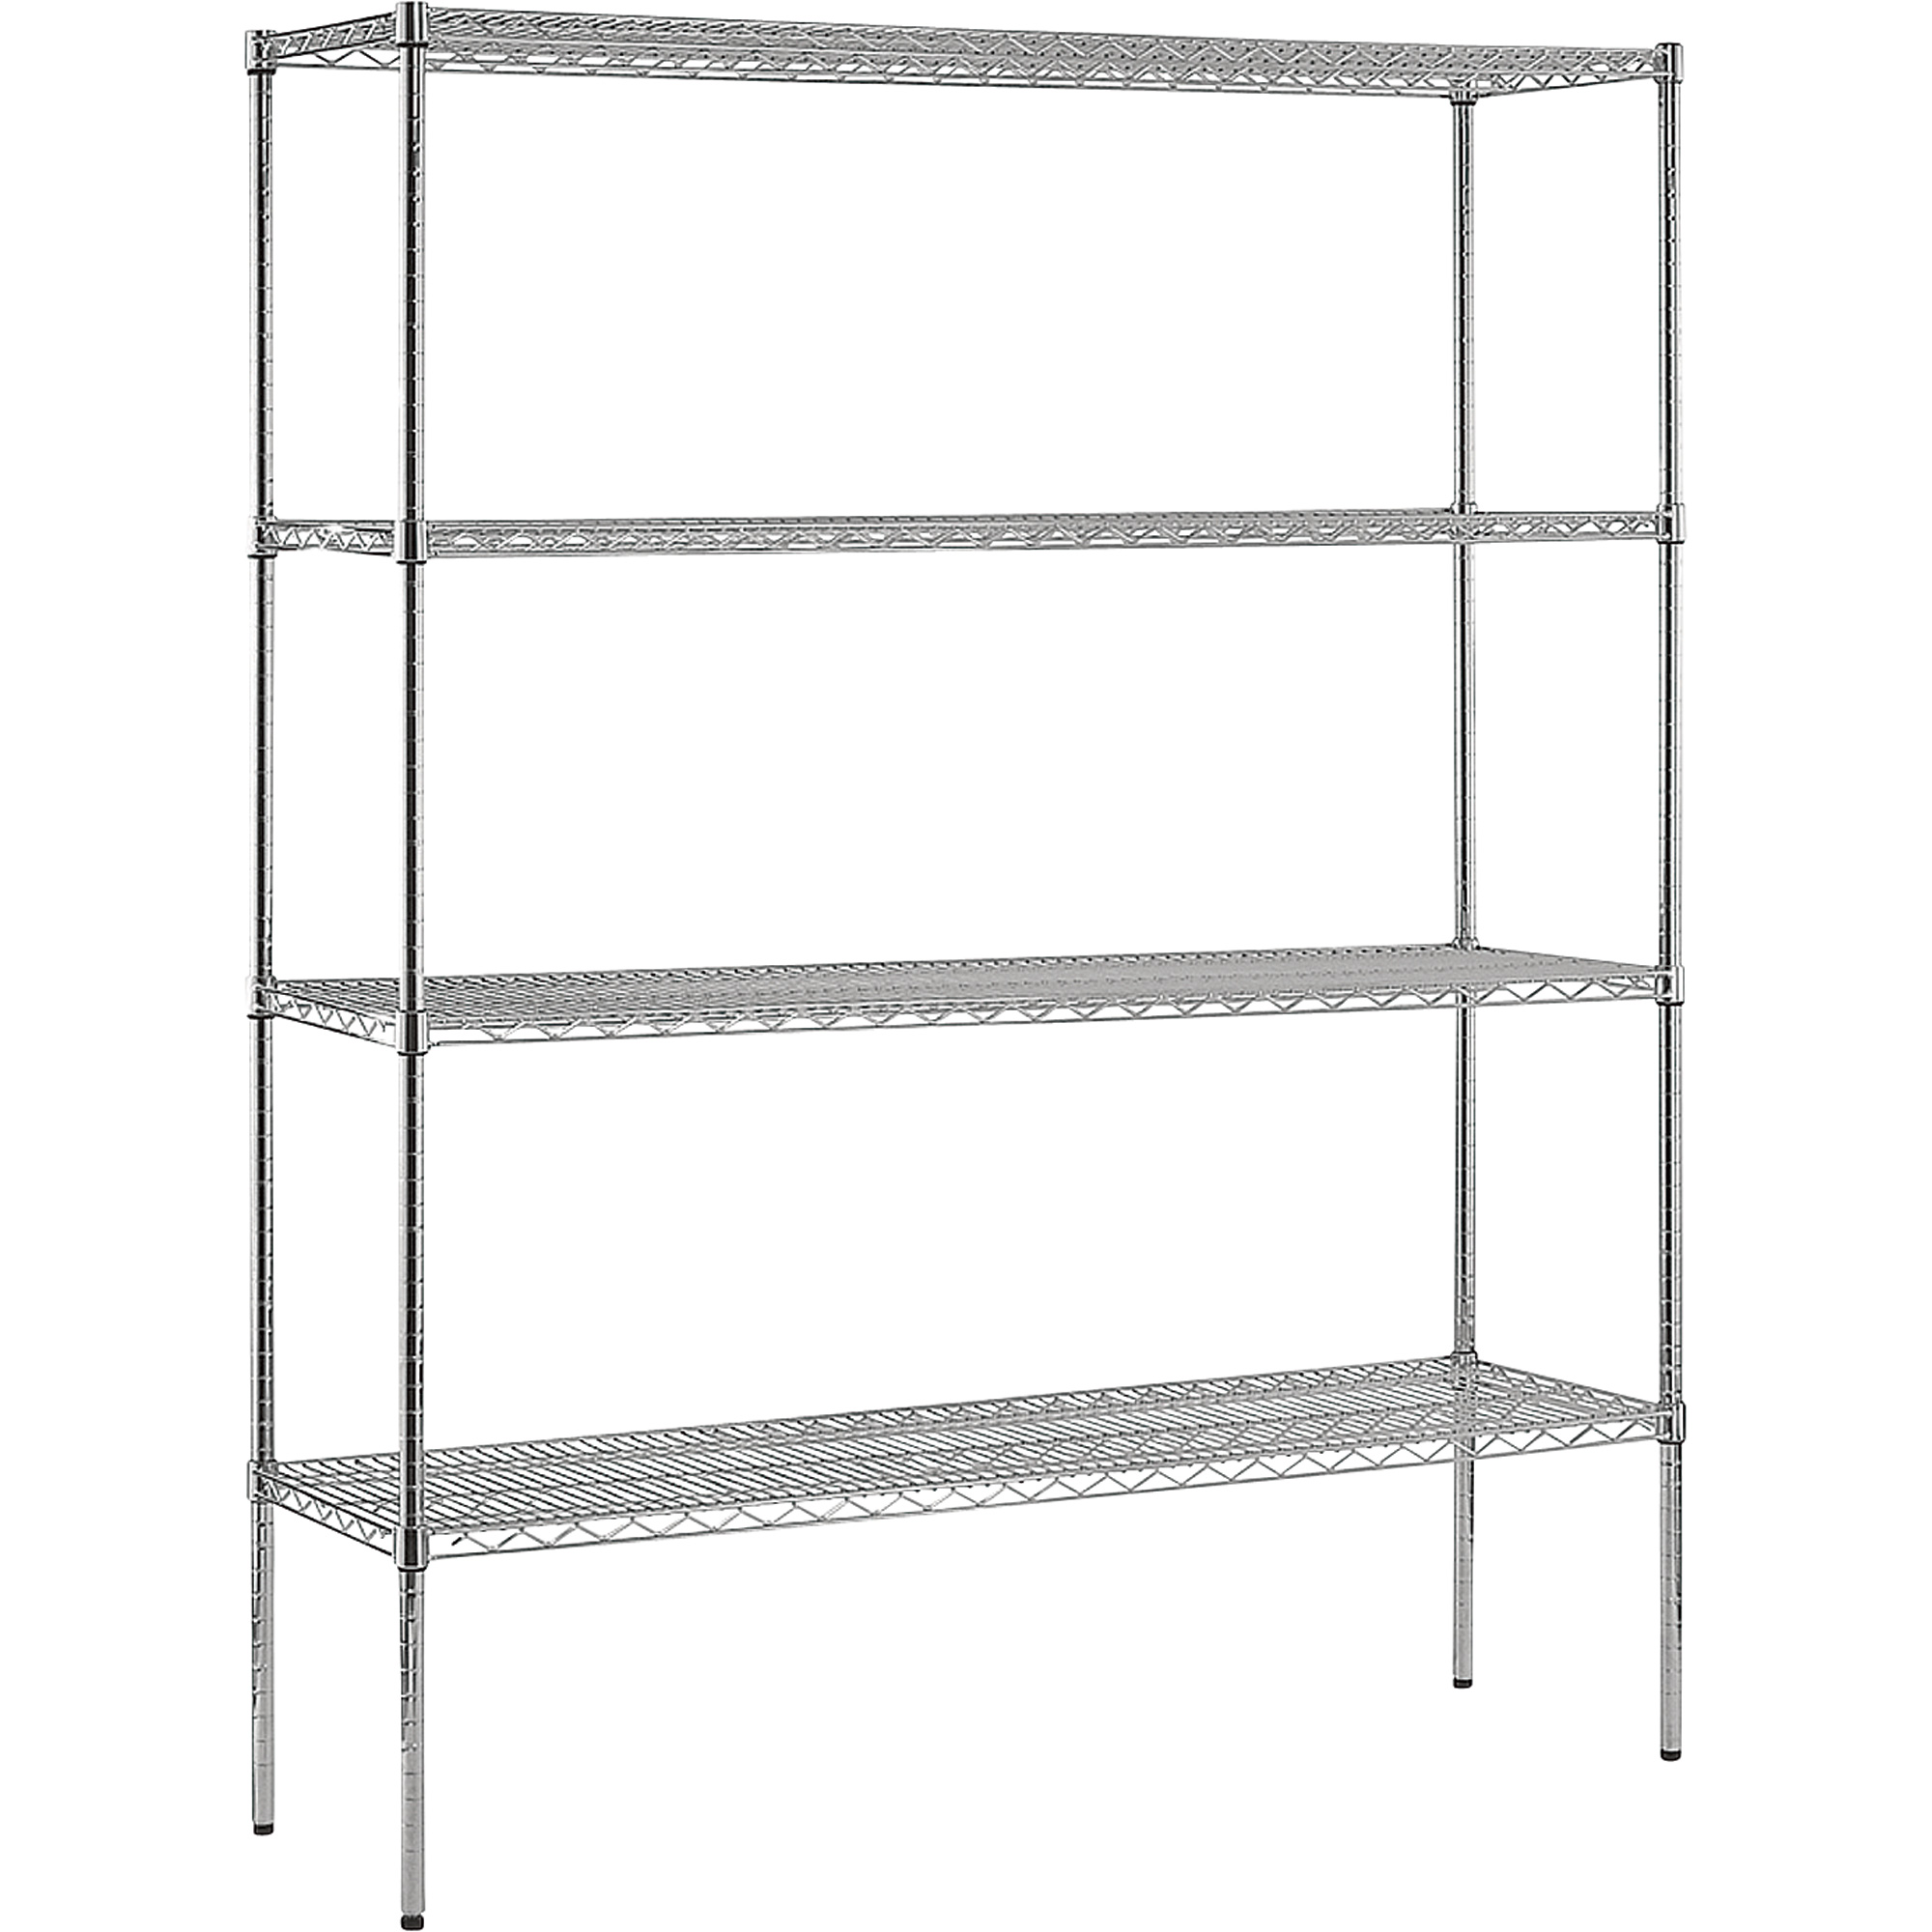 cozy 4 Shelf Chrome Wire Shelving Unit by Edsal Shelving for garage furniture ideas